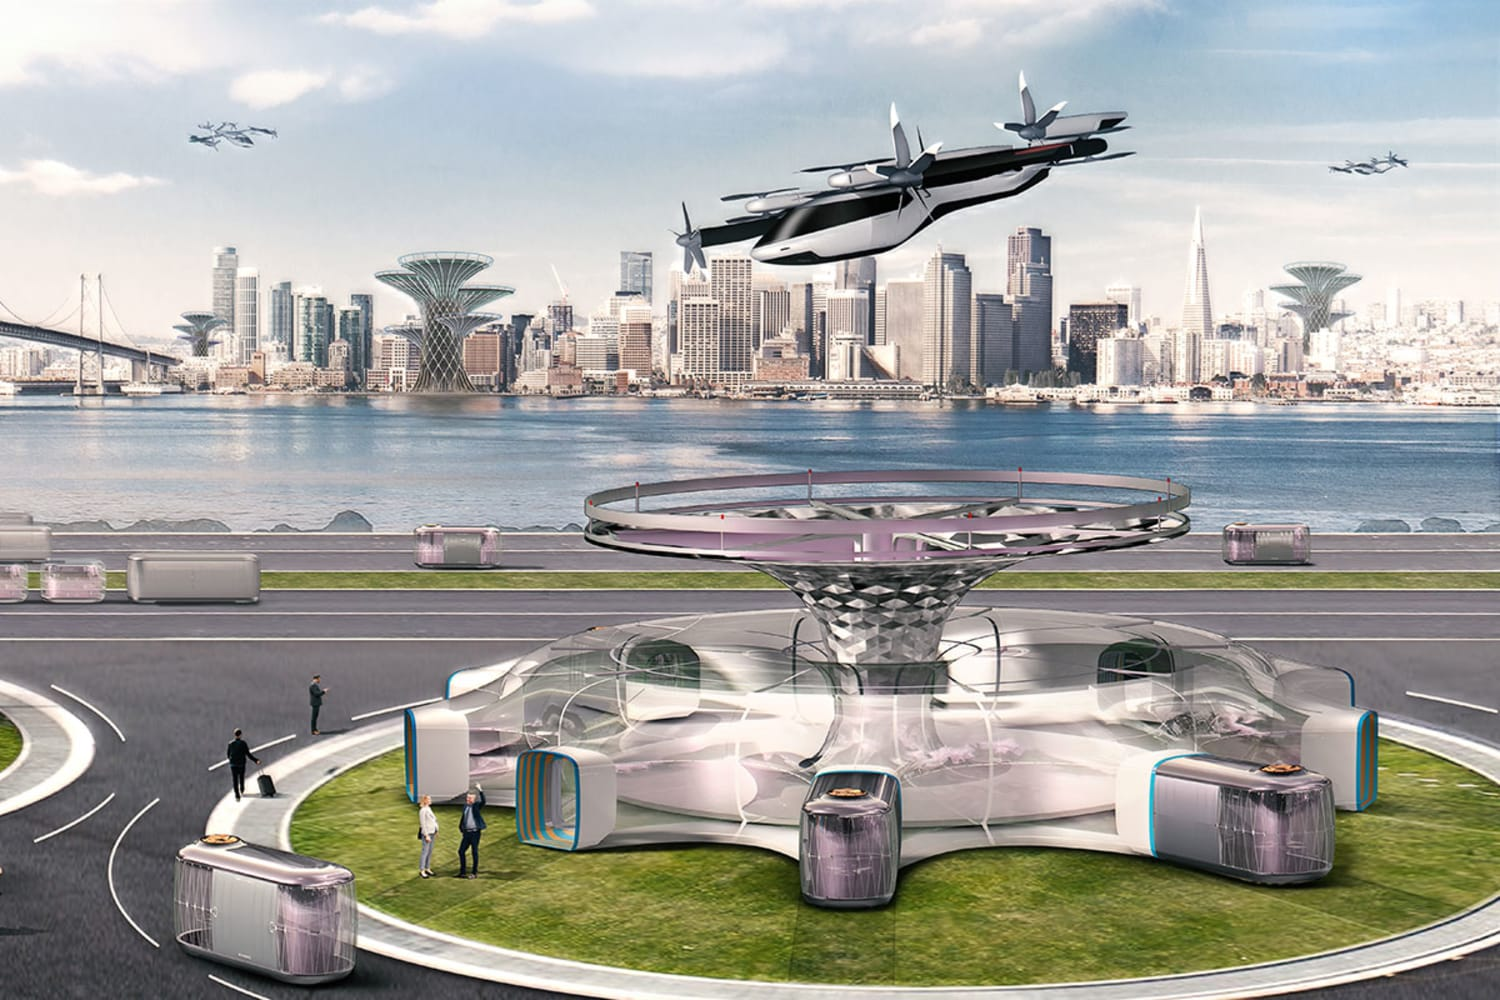 WEB Large 39825 Hyundai Motor Presents Visionfor Human Centered Future Citiesthrough Smart Mobility Solutionsat CES2020